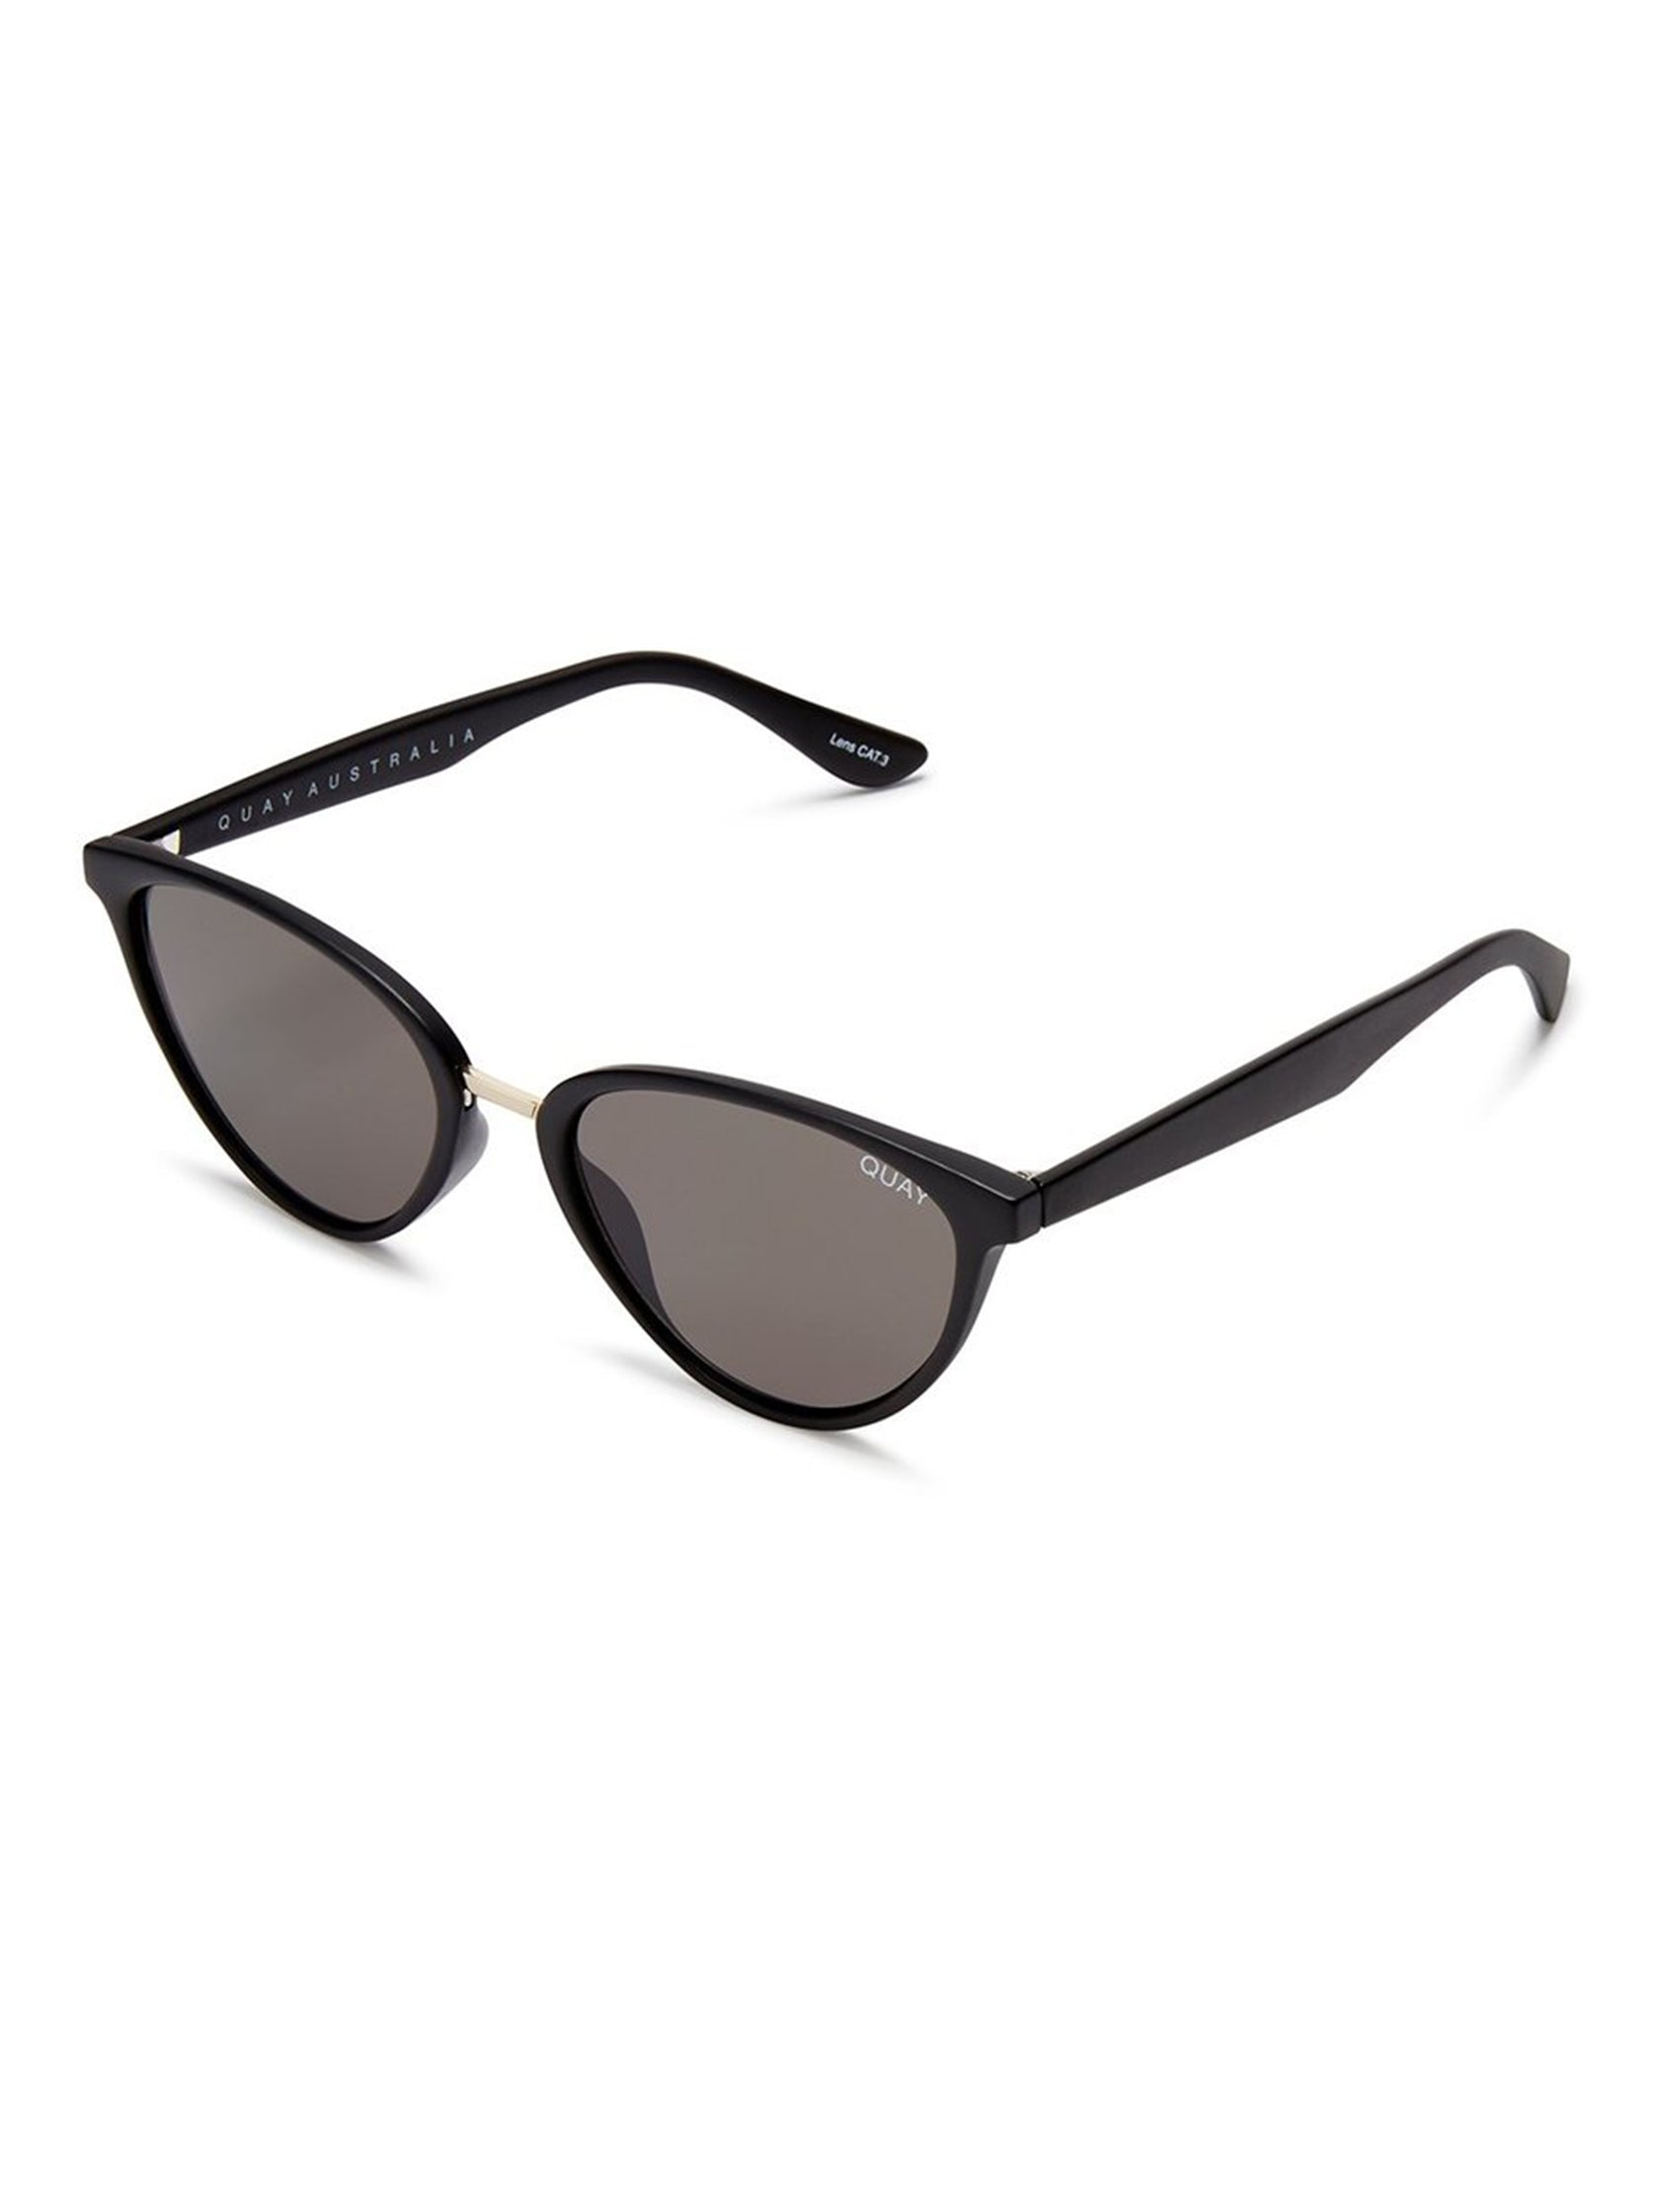 Woman wearing a sunglasses rental from Quay Australia called Rumours 57mm Sunglasses